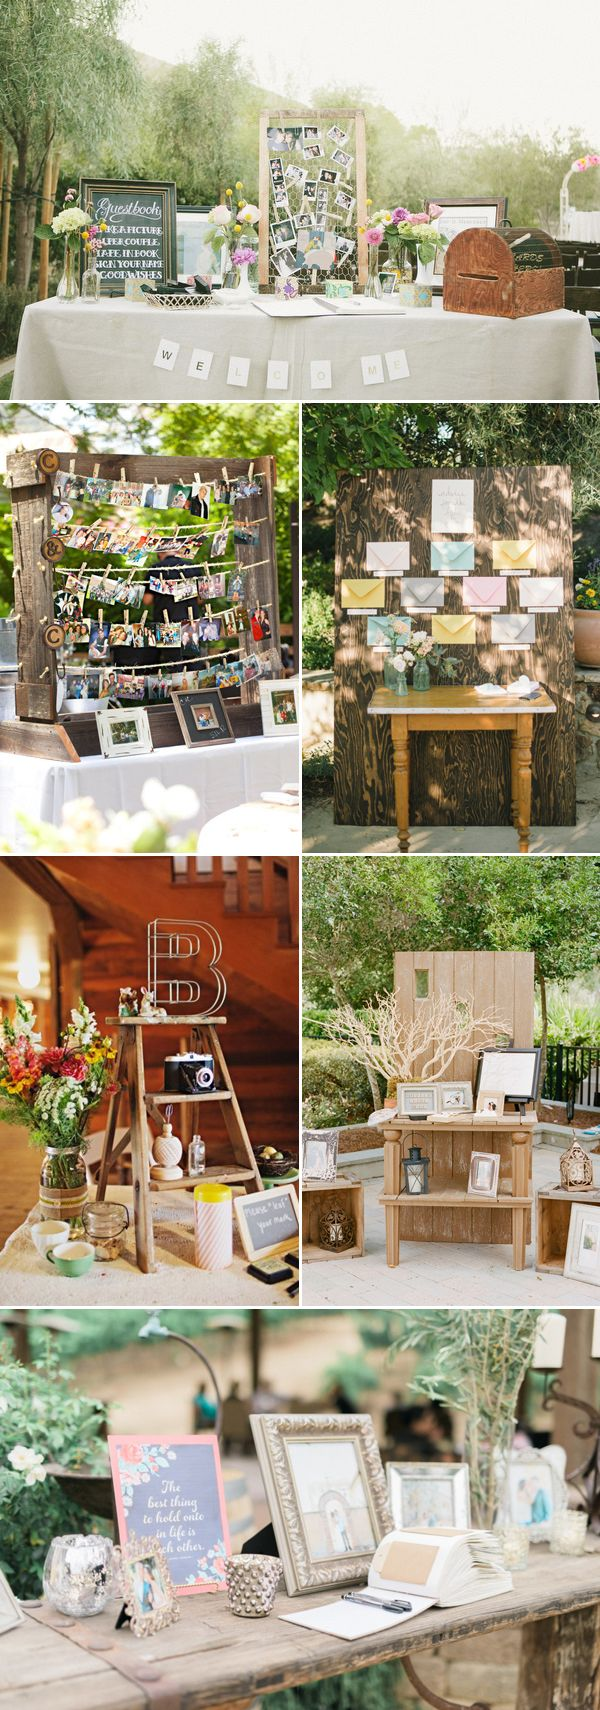 Wedding Sign In Table Decorations Stunning 35 Creatively Beautiful Guestbook And Signin Table Décor Ideas 2018